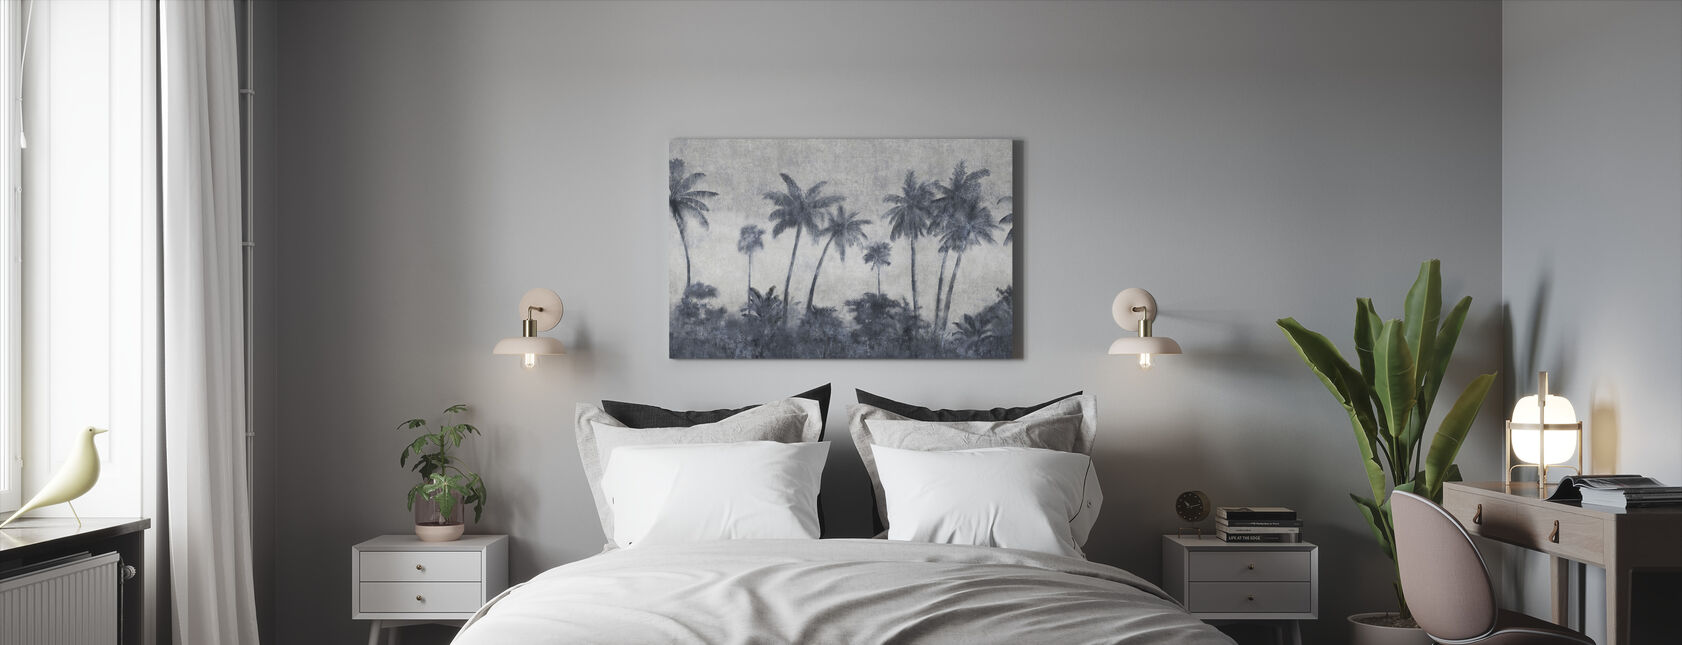 California Palmes on Concrete - Canvas print - Bedroom